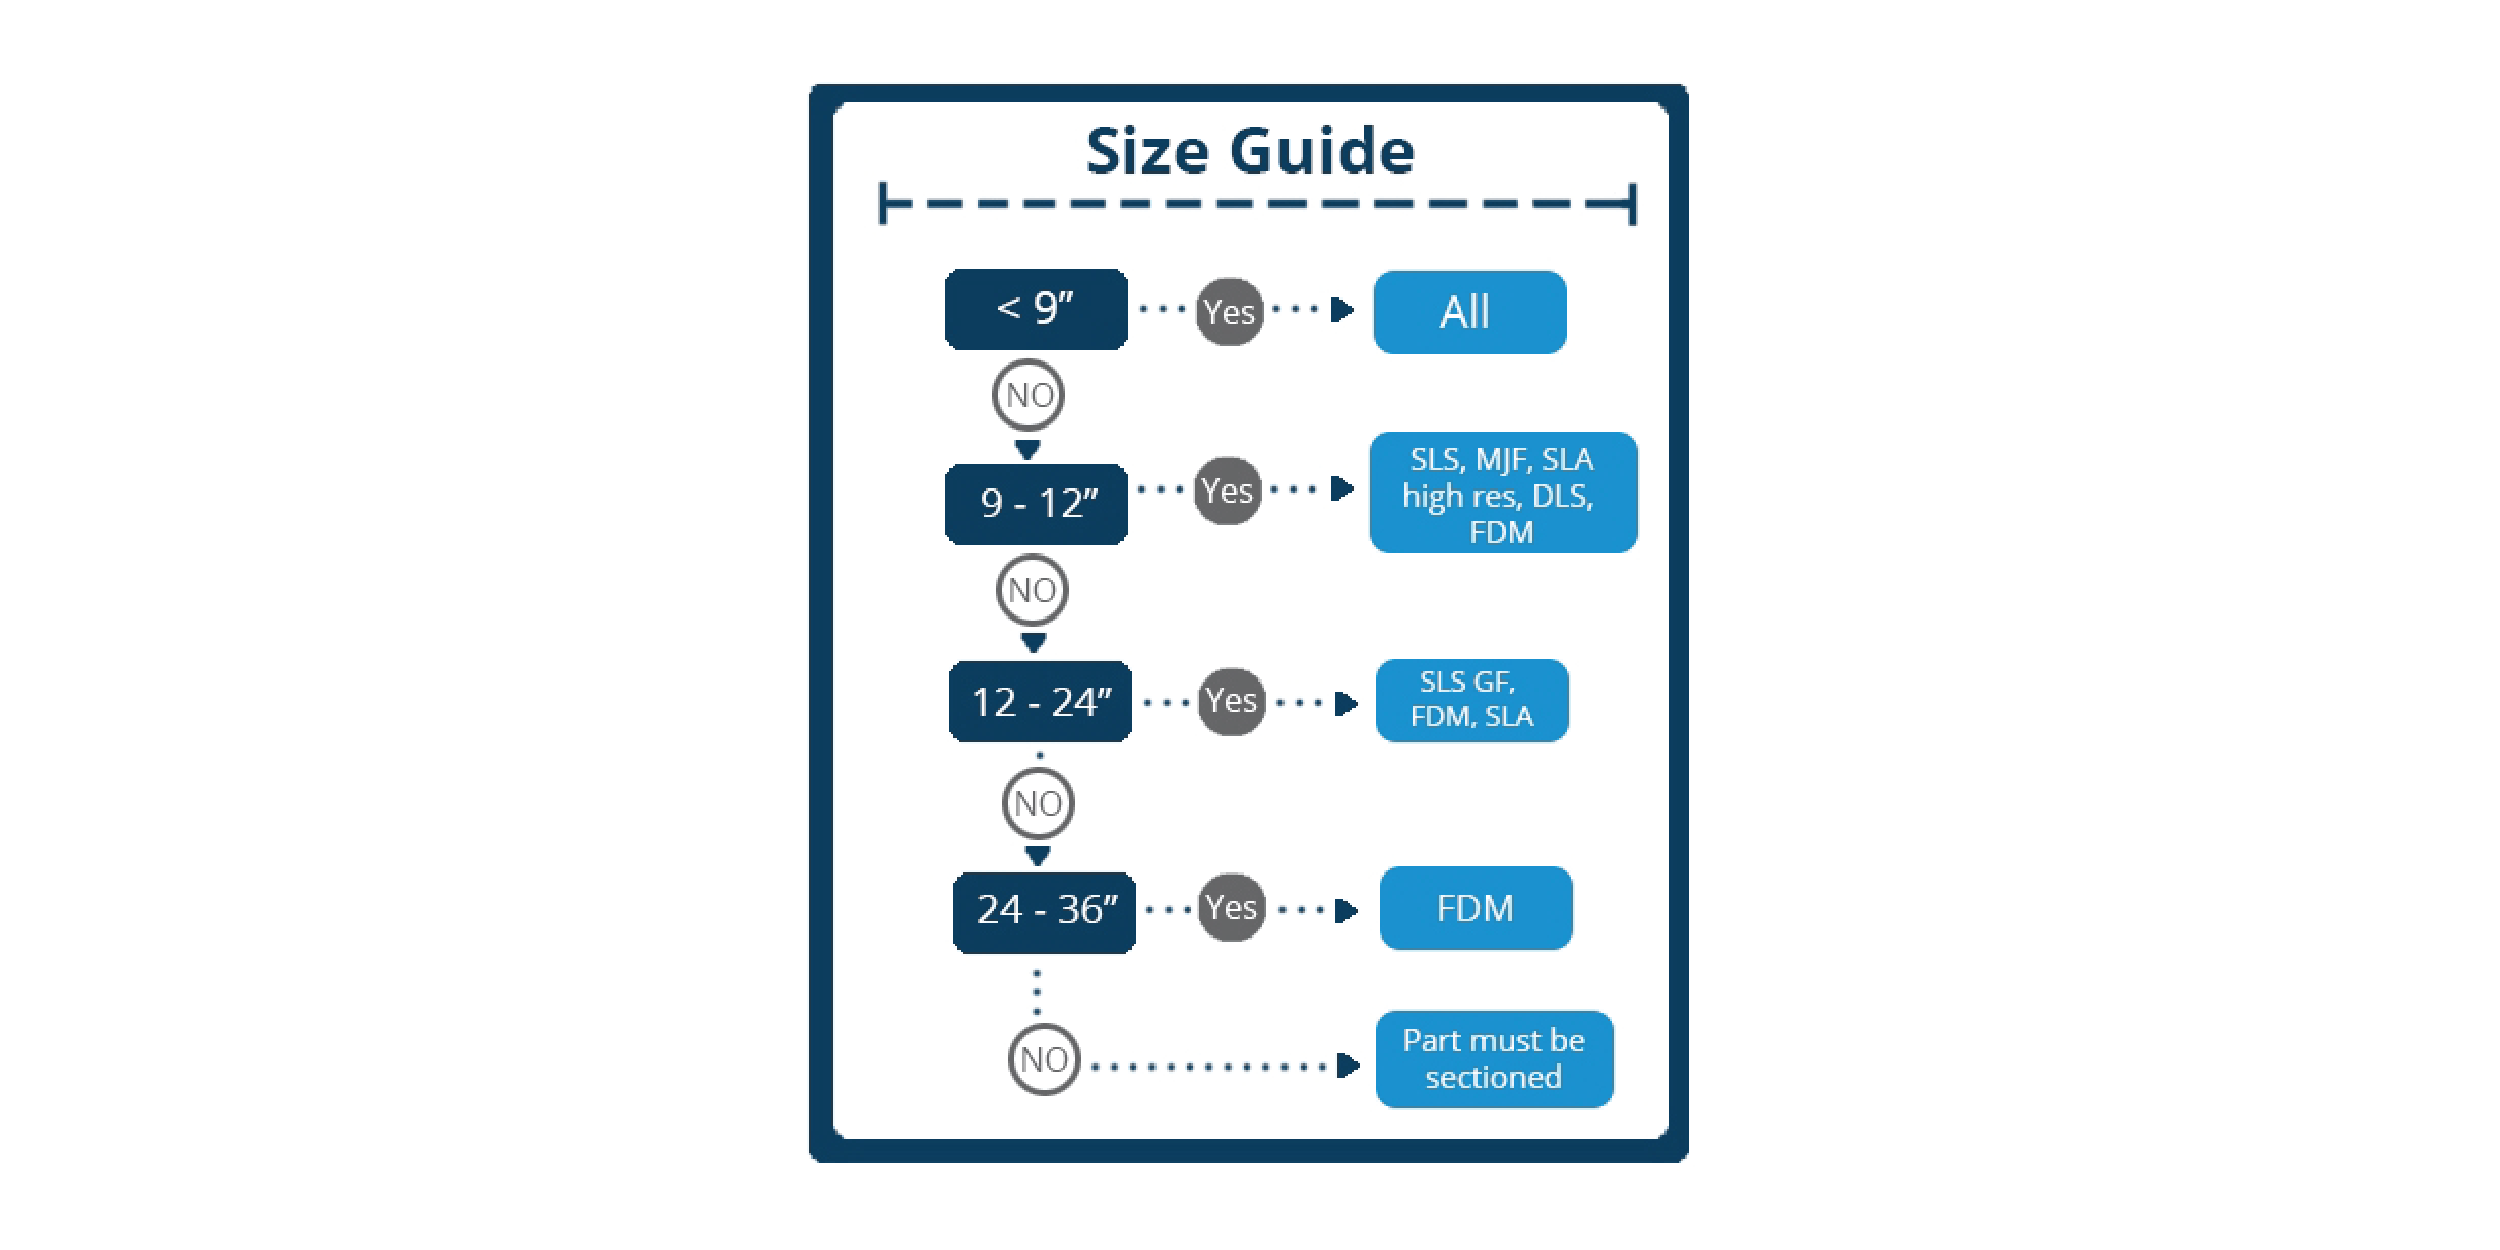 3D Printing Size Guide